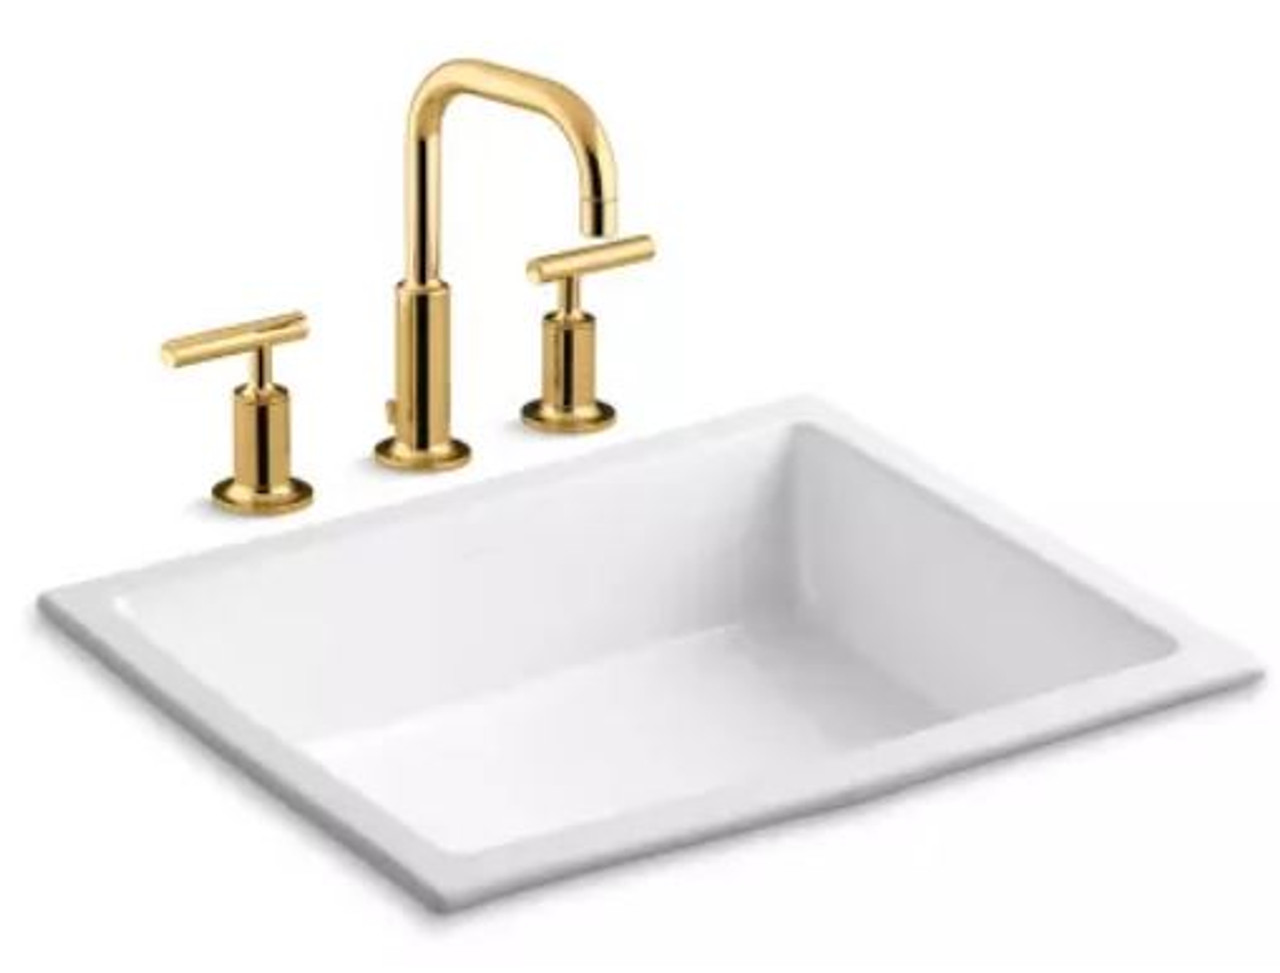 kohler verticyl 17 1 4 undermount bathroom sink with overflow and devonshire single hole bathroom faucet with pop up drain assembly